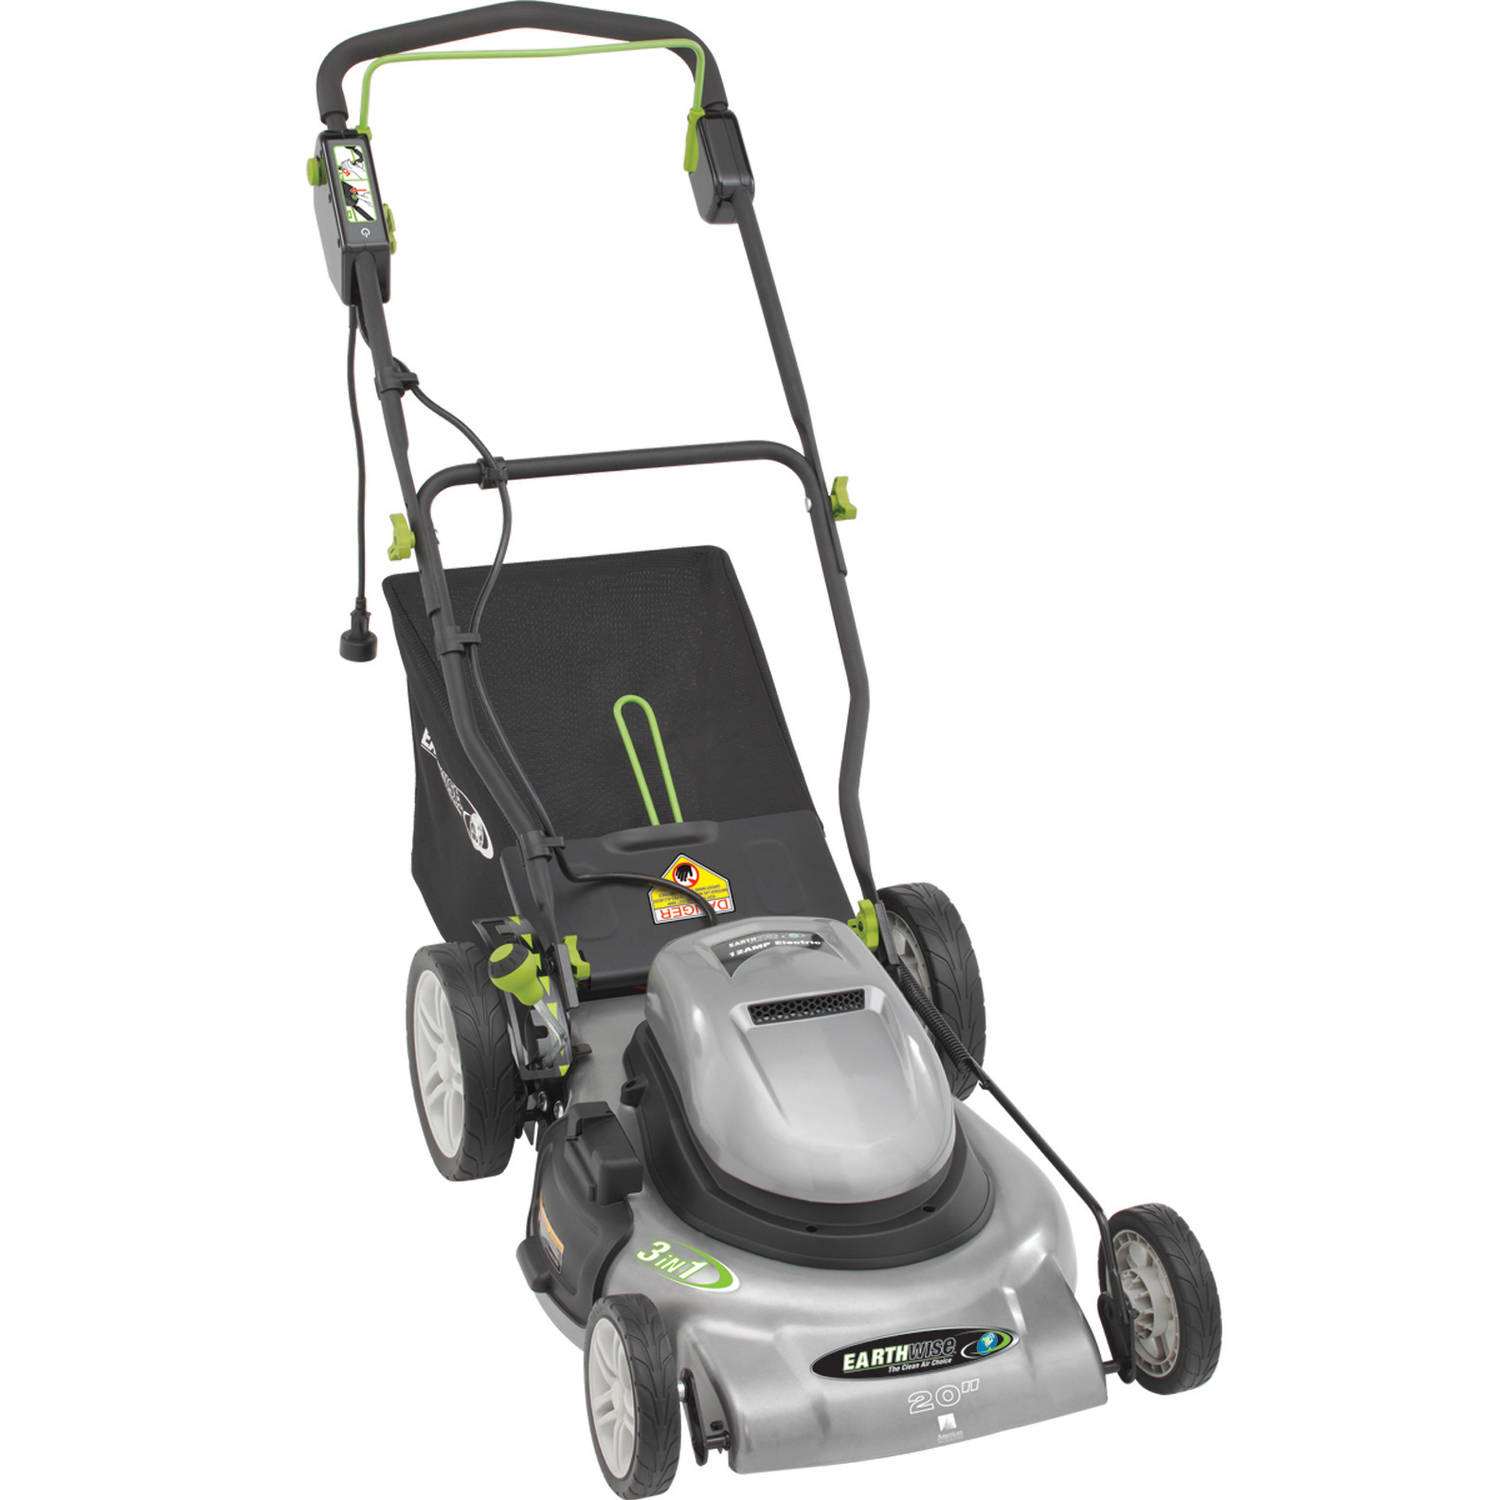 "Earthwise 20"" 12 Amp Corded 3-in-1 Electric Lawn Mower by Great States Corporation"